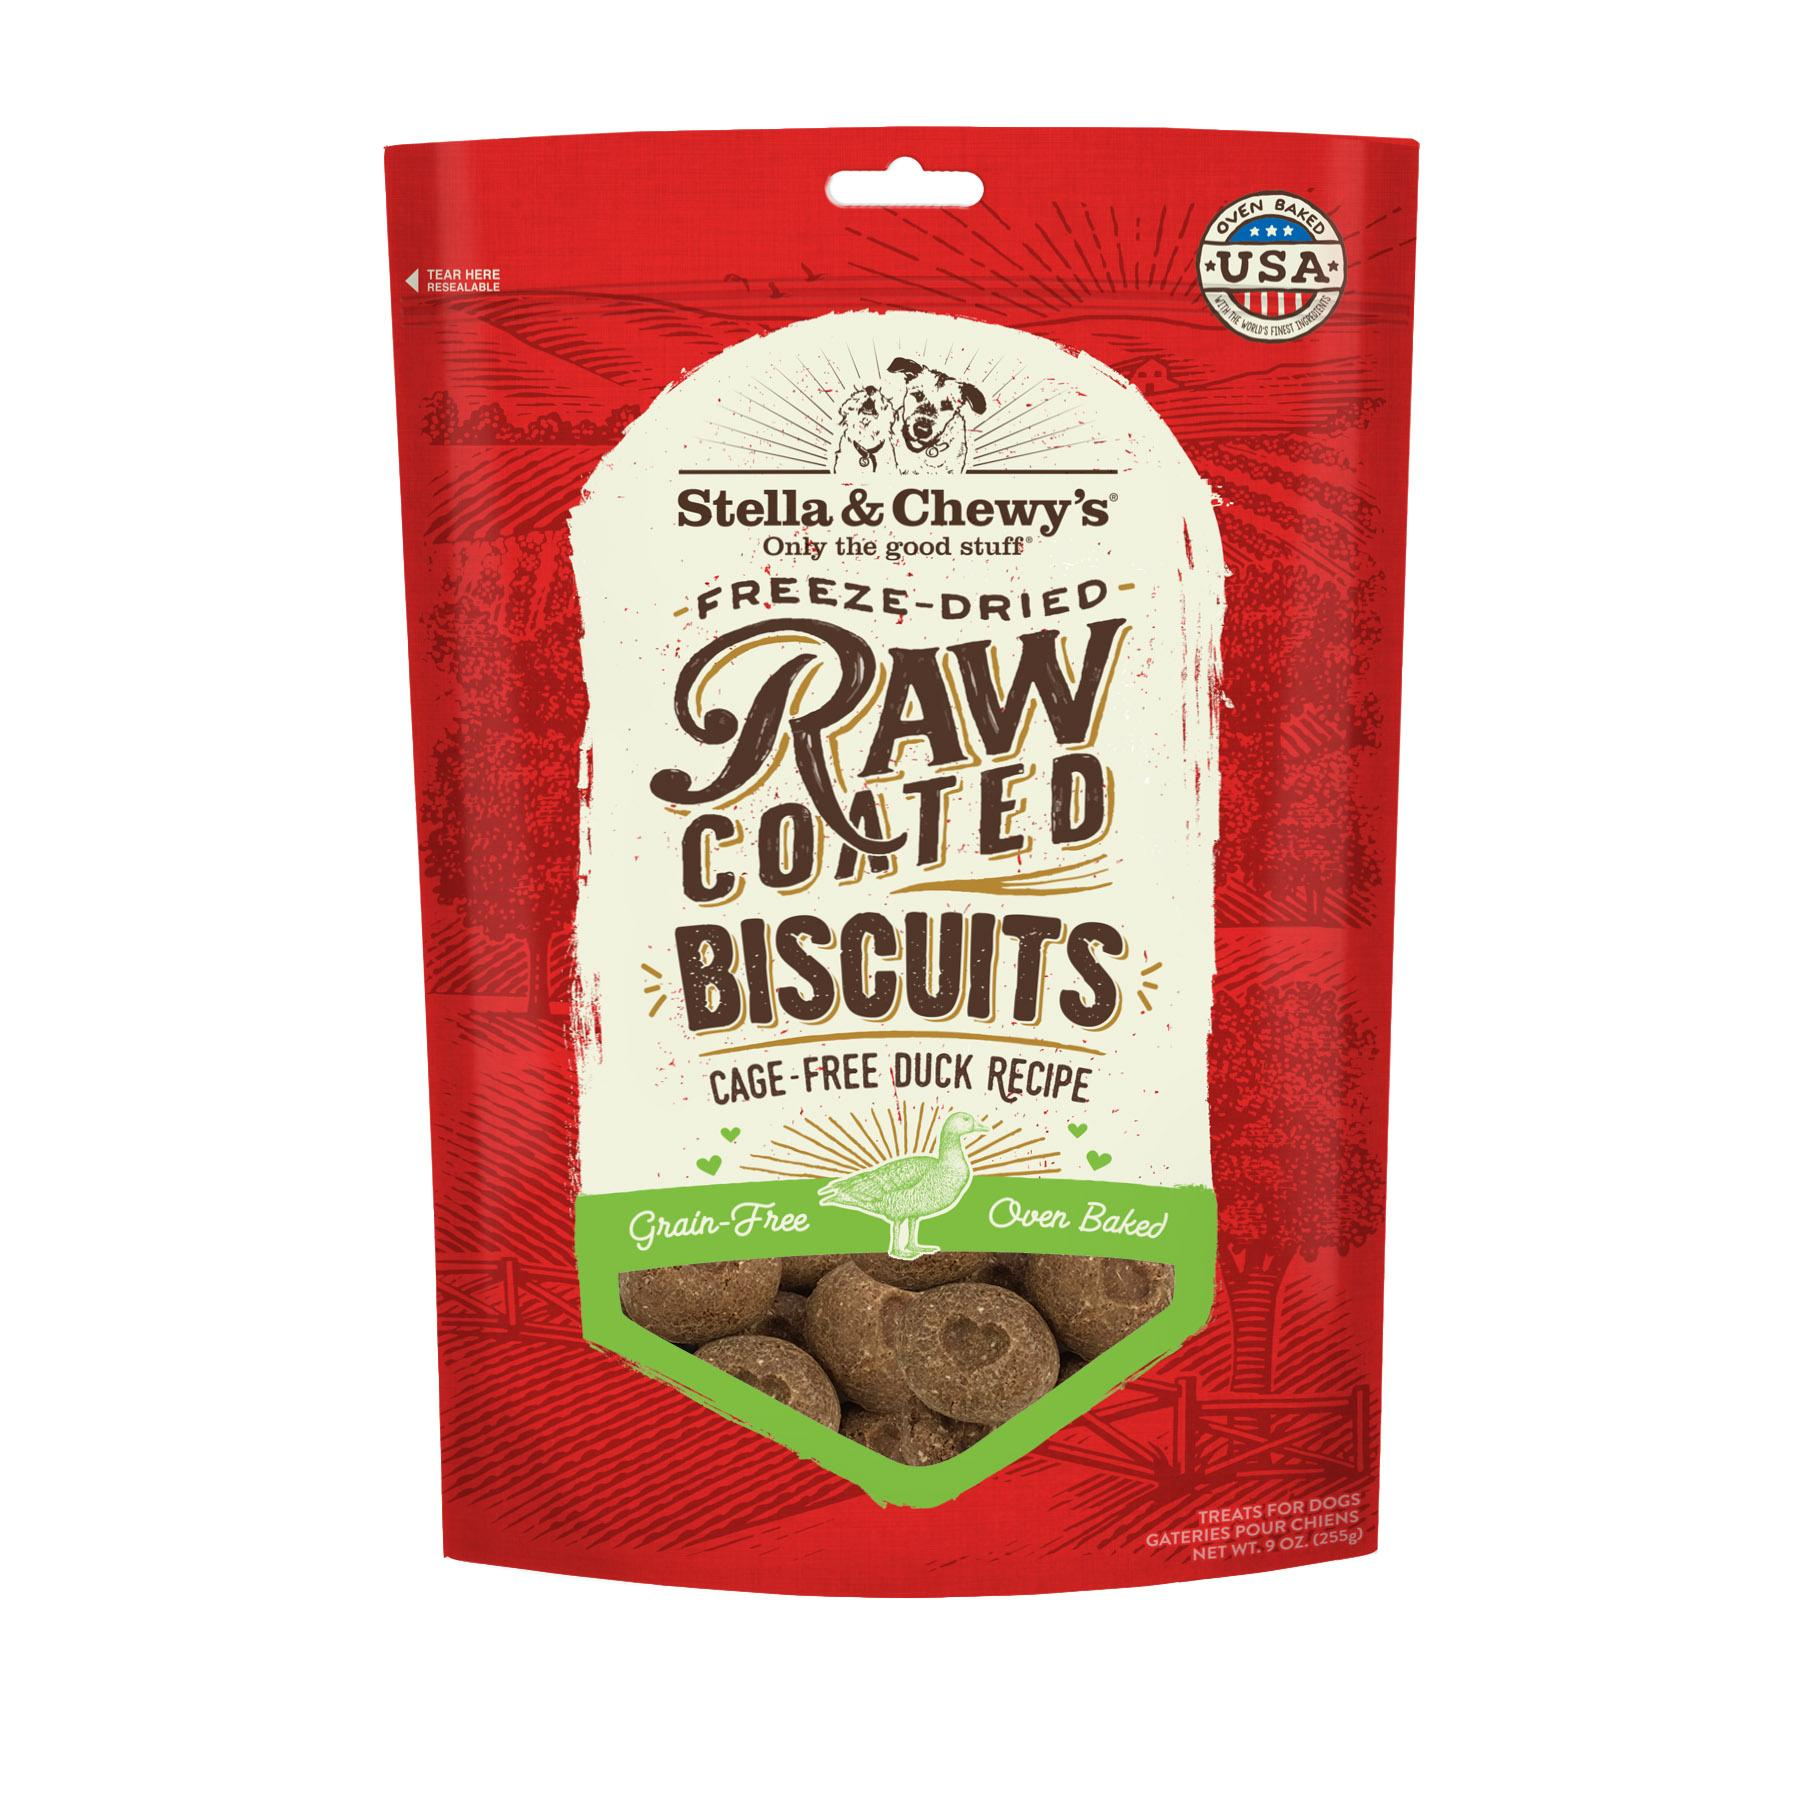 Stella & Chewy's Raw Coated Biscuits Cage-Free Duck Recipe Dog Treats, 9-oz (Size: 9-oz) Image